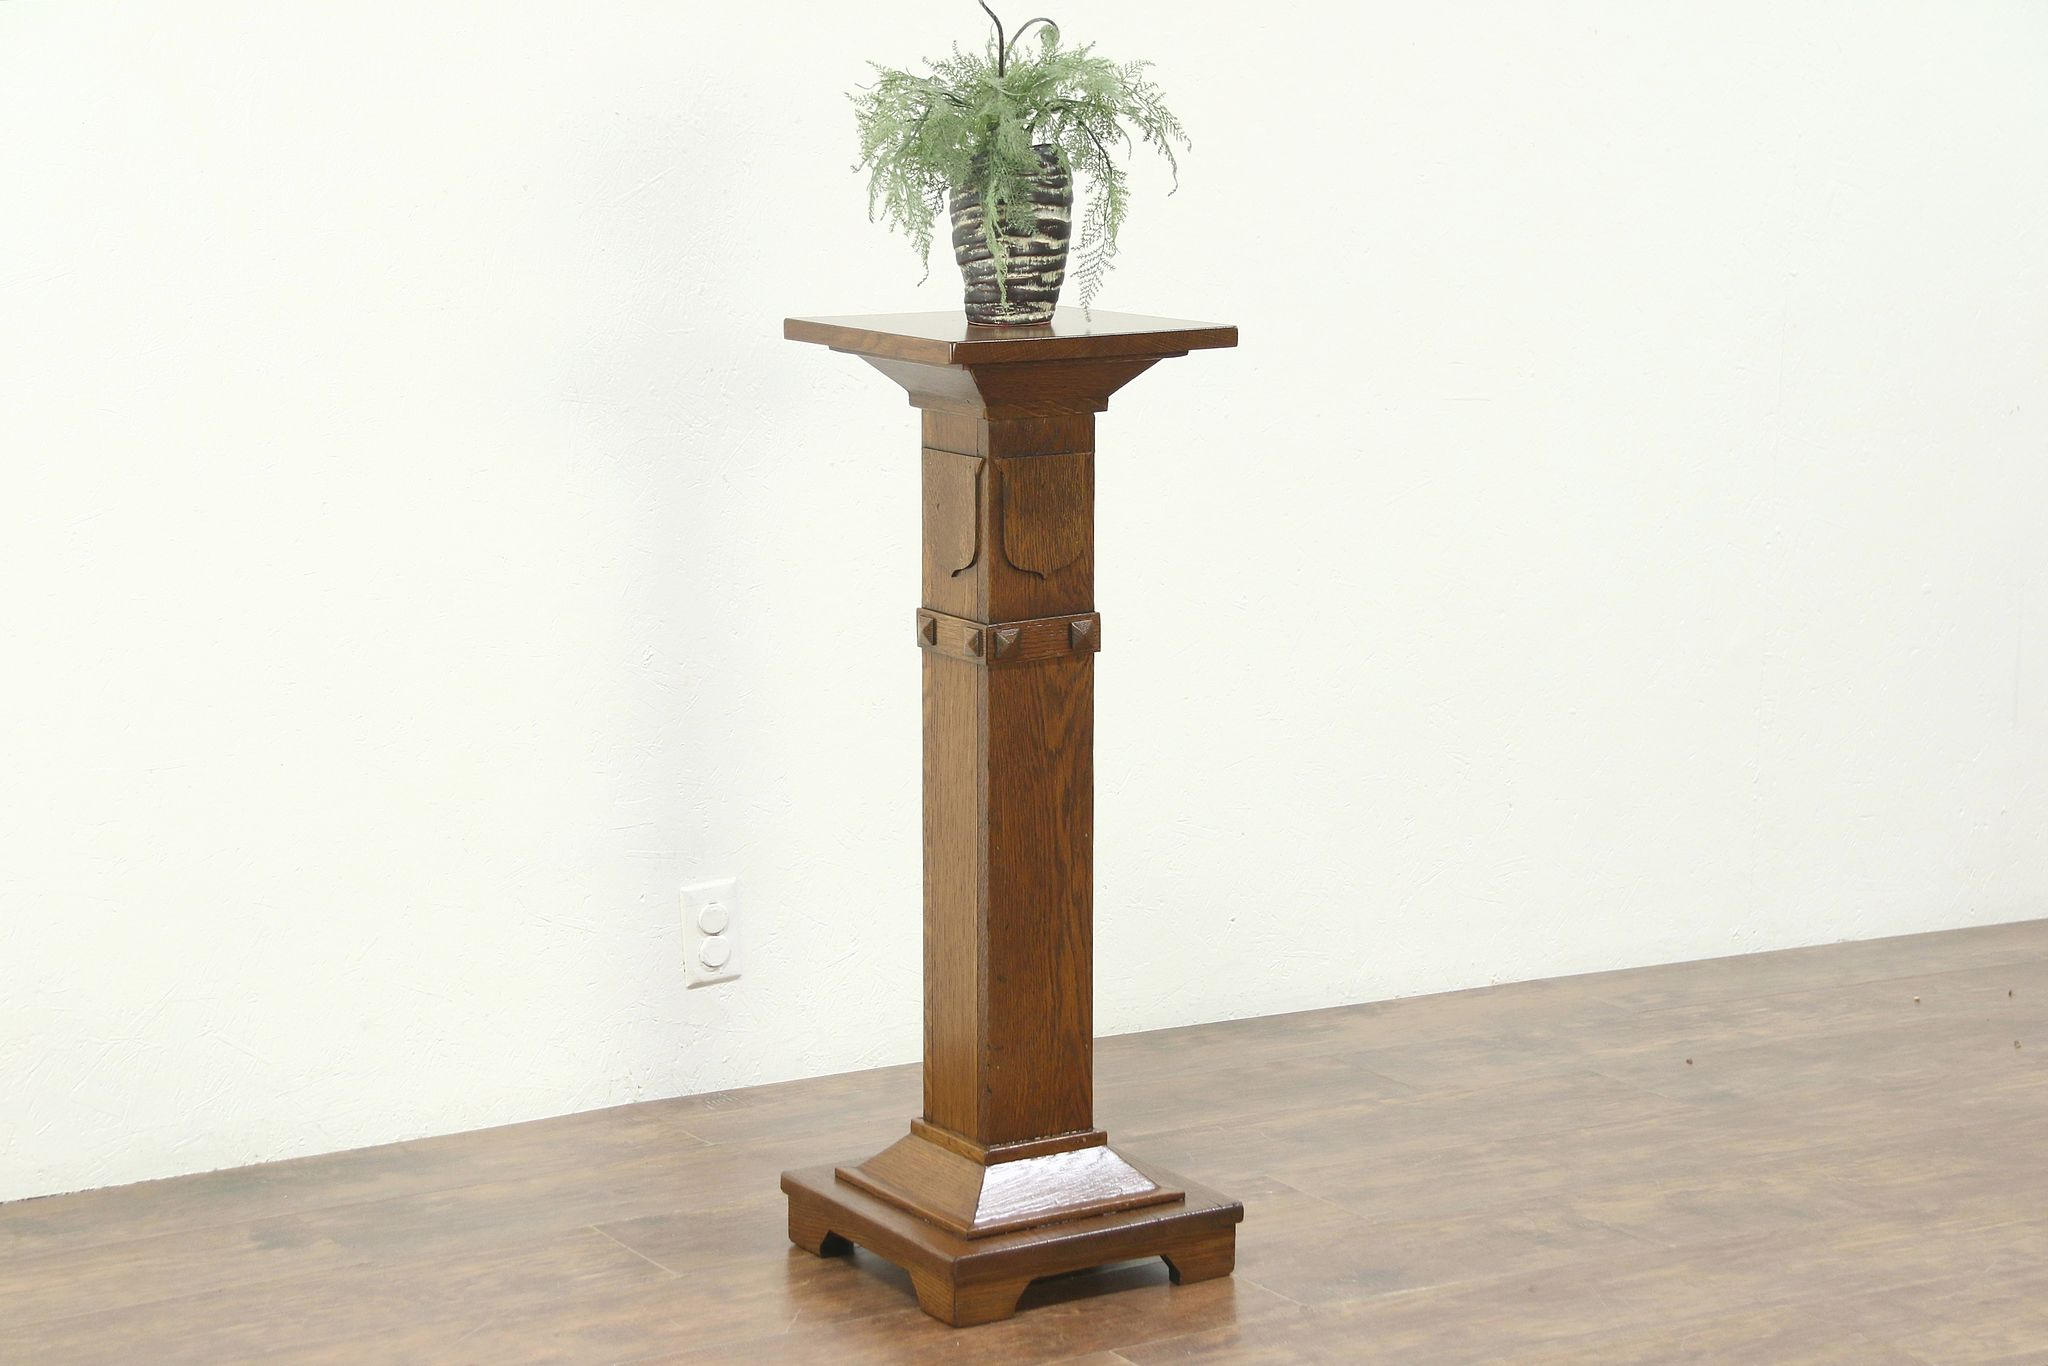 search pedestal in sculpture art pedestals urns additional and style adam british robert collection dp the for pair of images